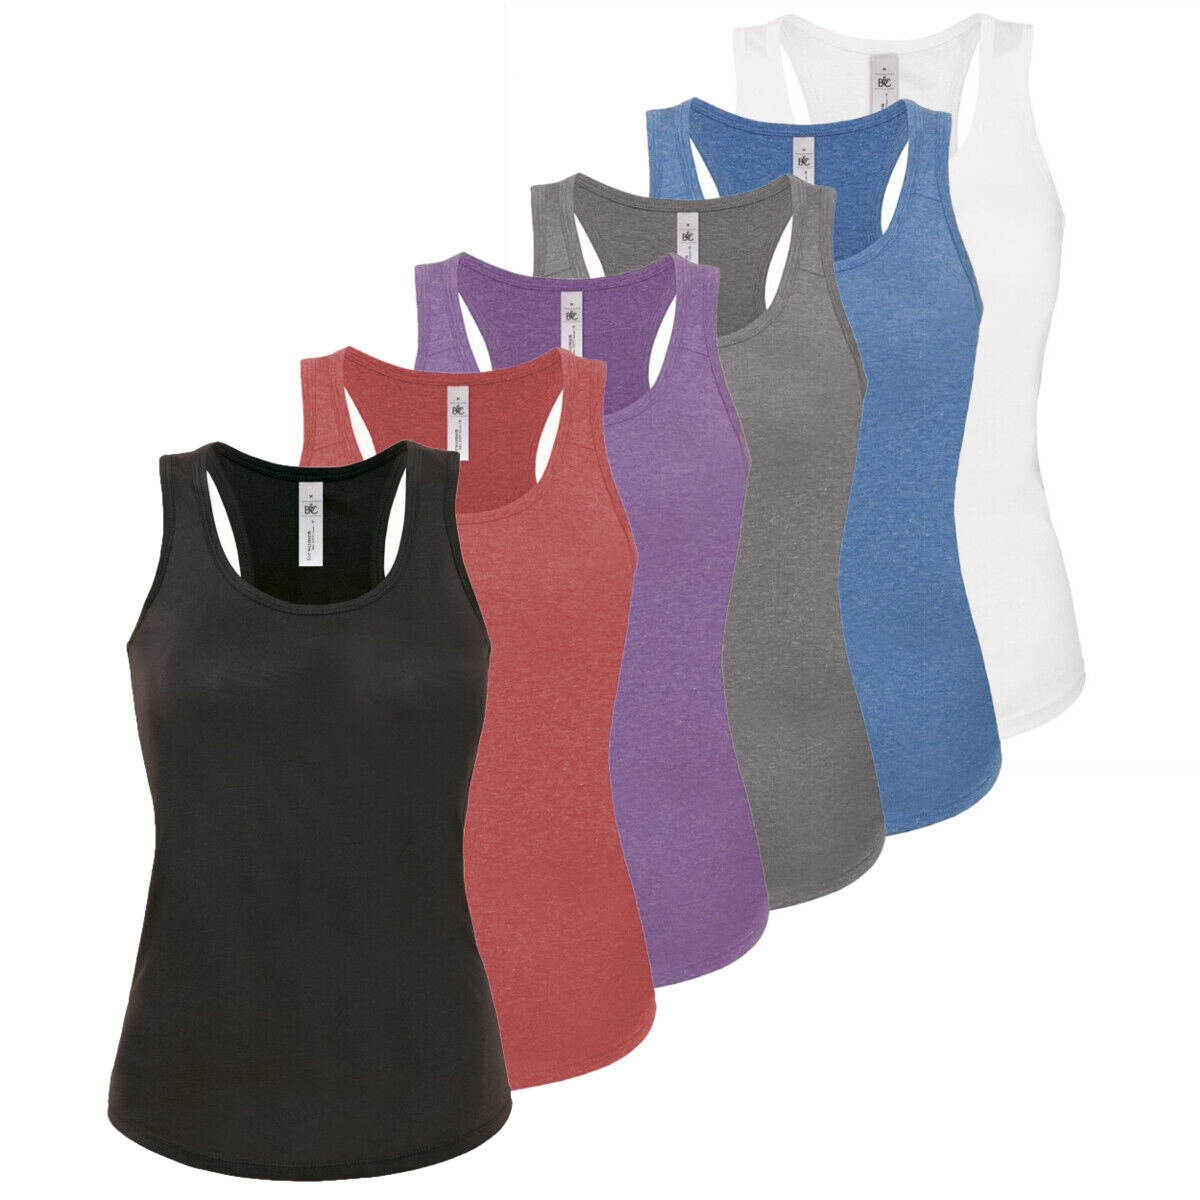 3 Pack Womens Ladies Vests Cami Sleeveless Top T-shirt Tank